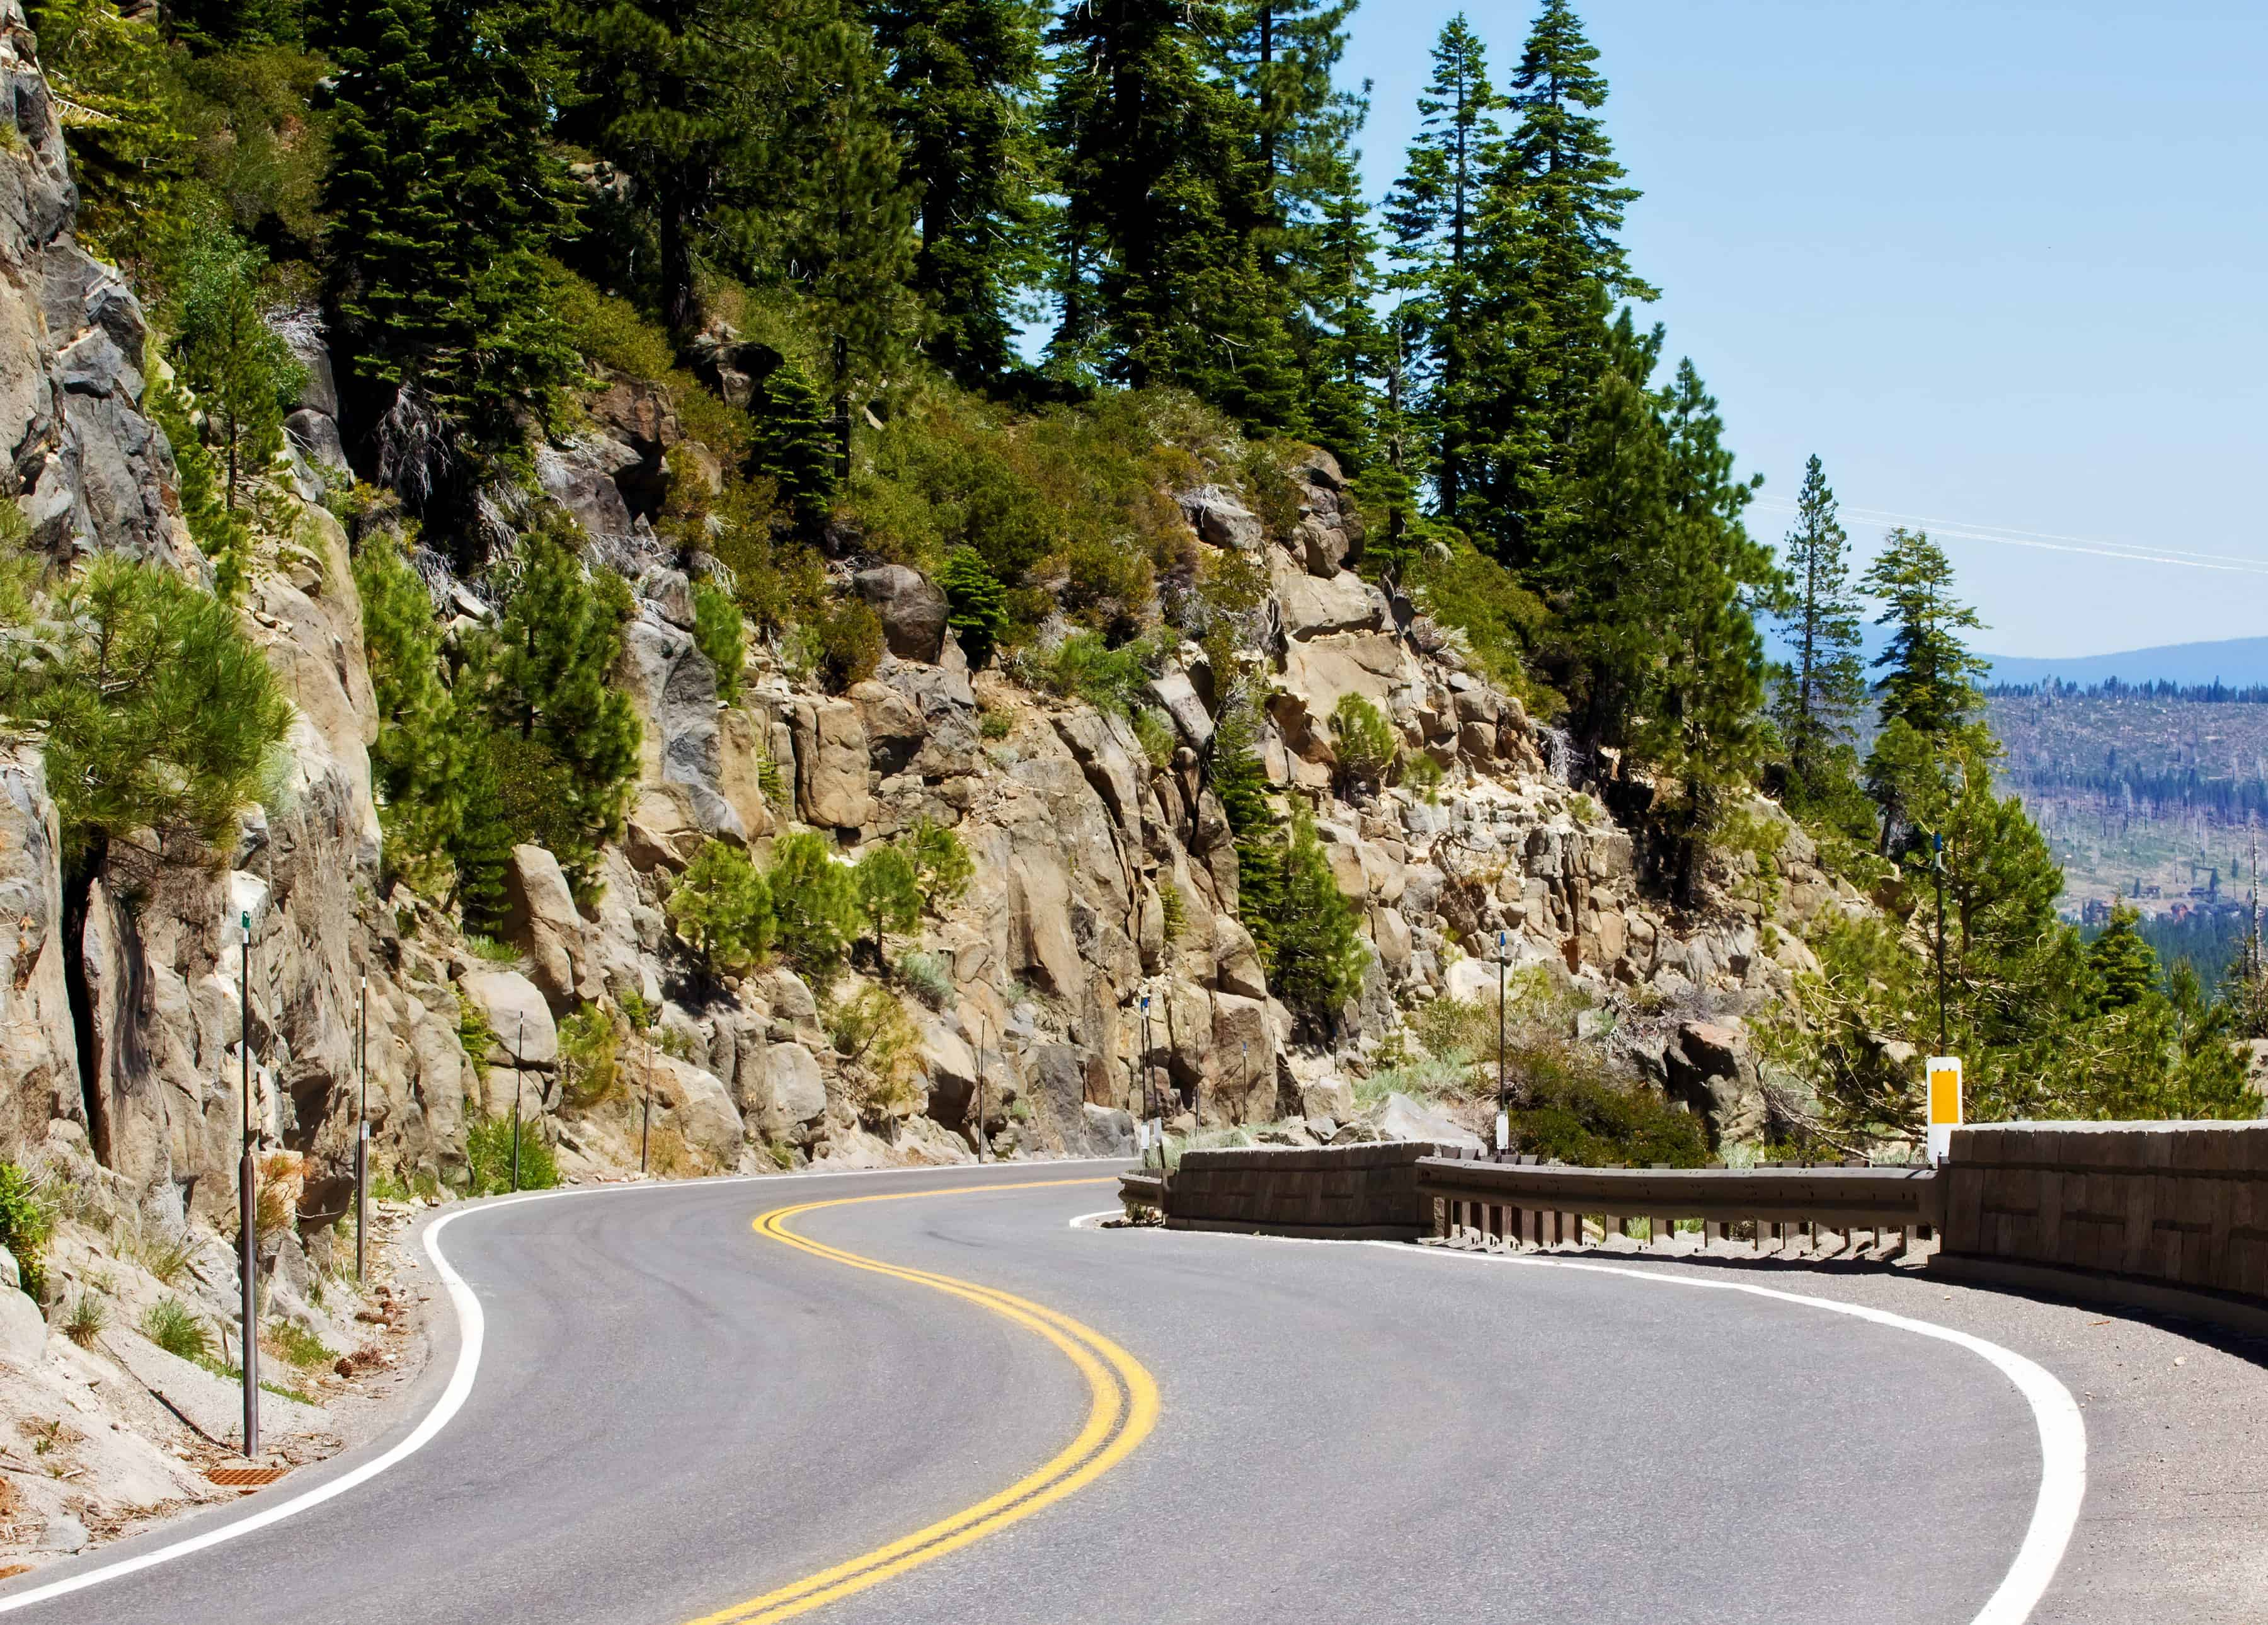 Top of the World: 5 High Altitude Driving Tips You Should Know